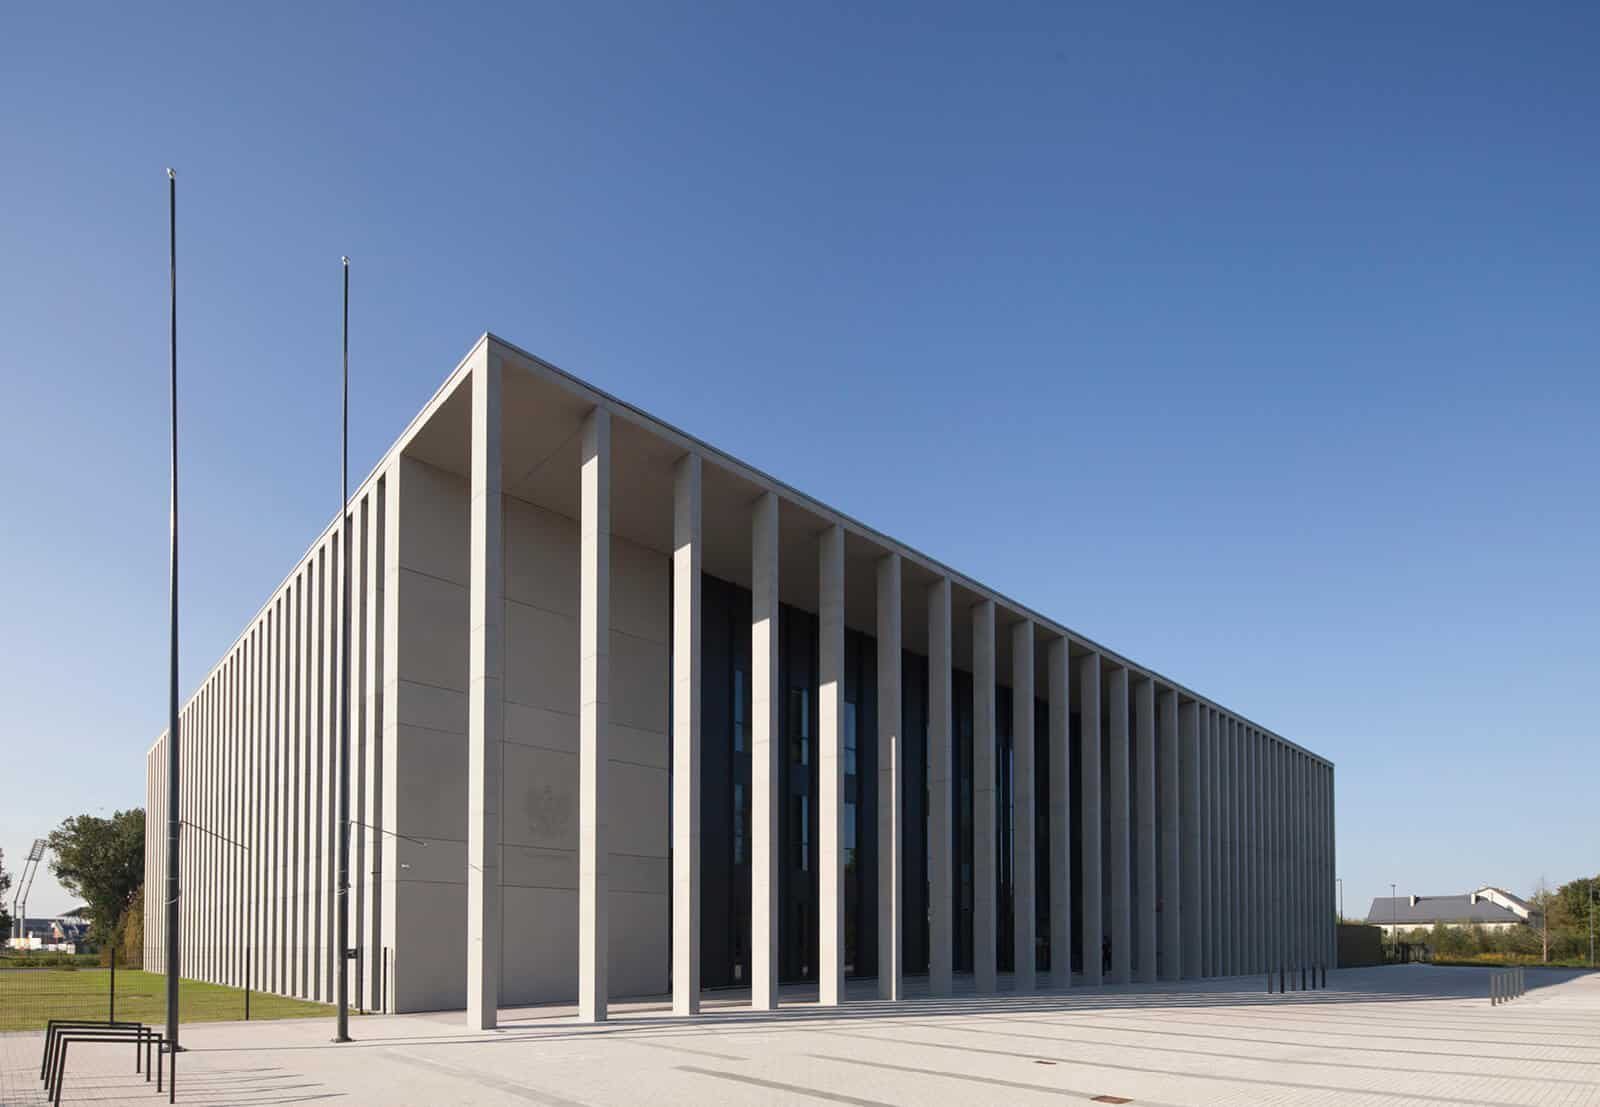 Regional Court Building Siedlce designed by HRA Architekci